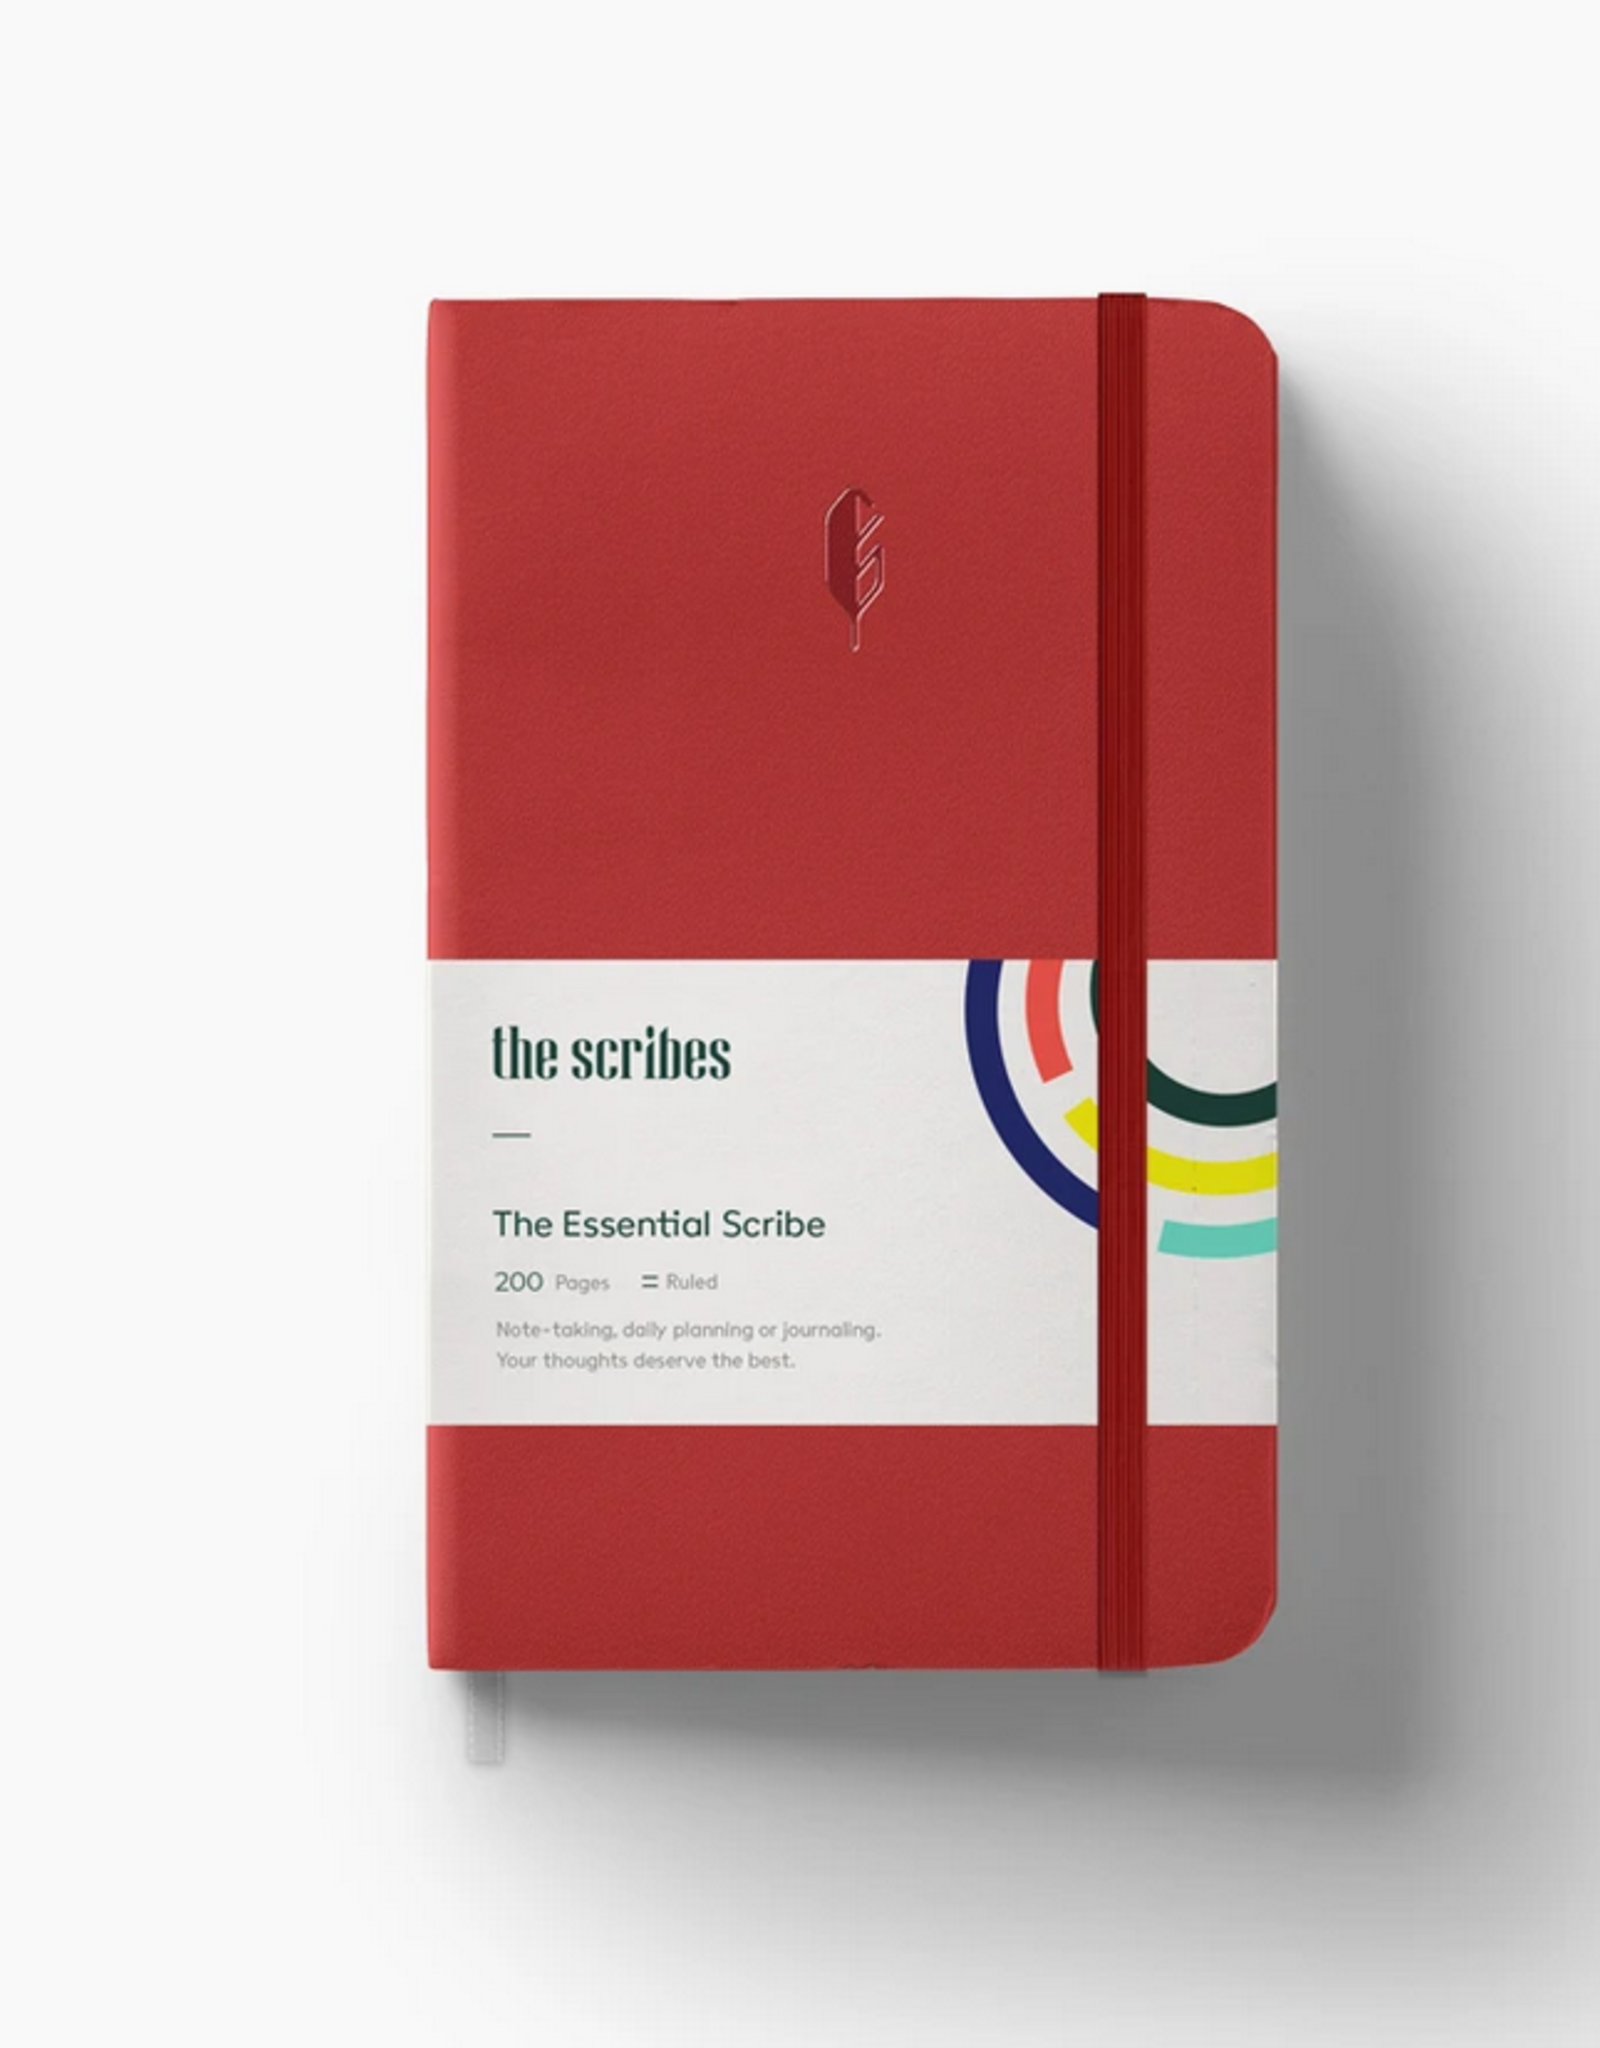 The Scribes The Scribes | The Essential Scribe Notebook Red